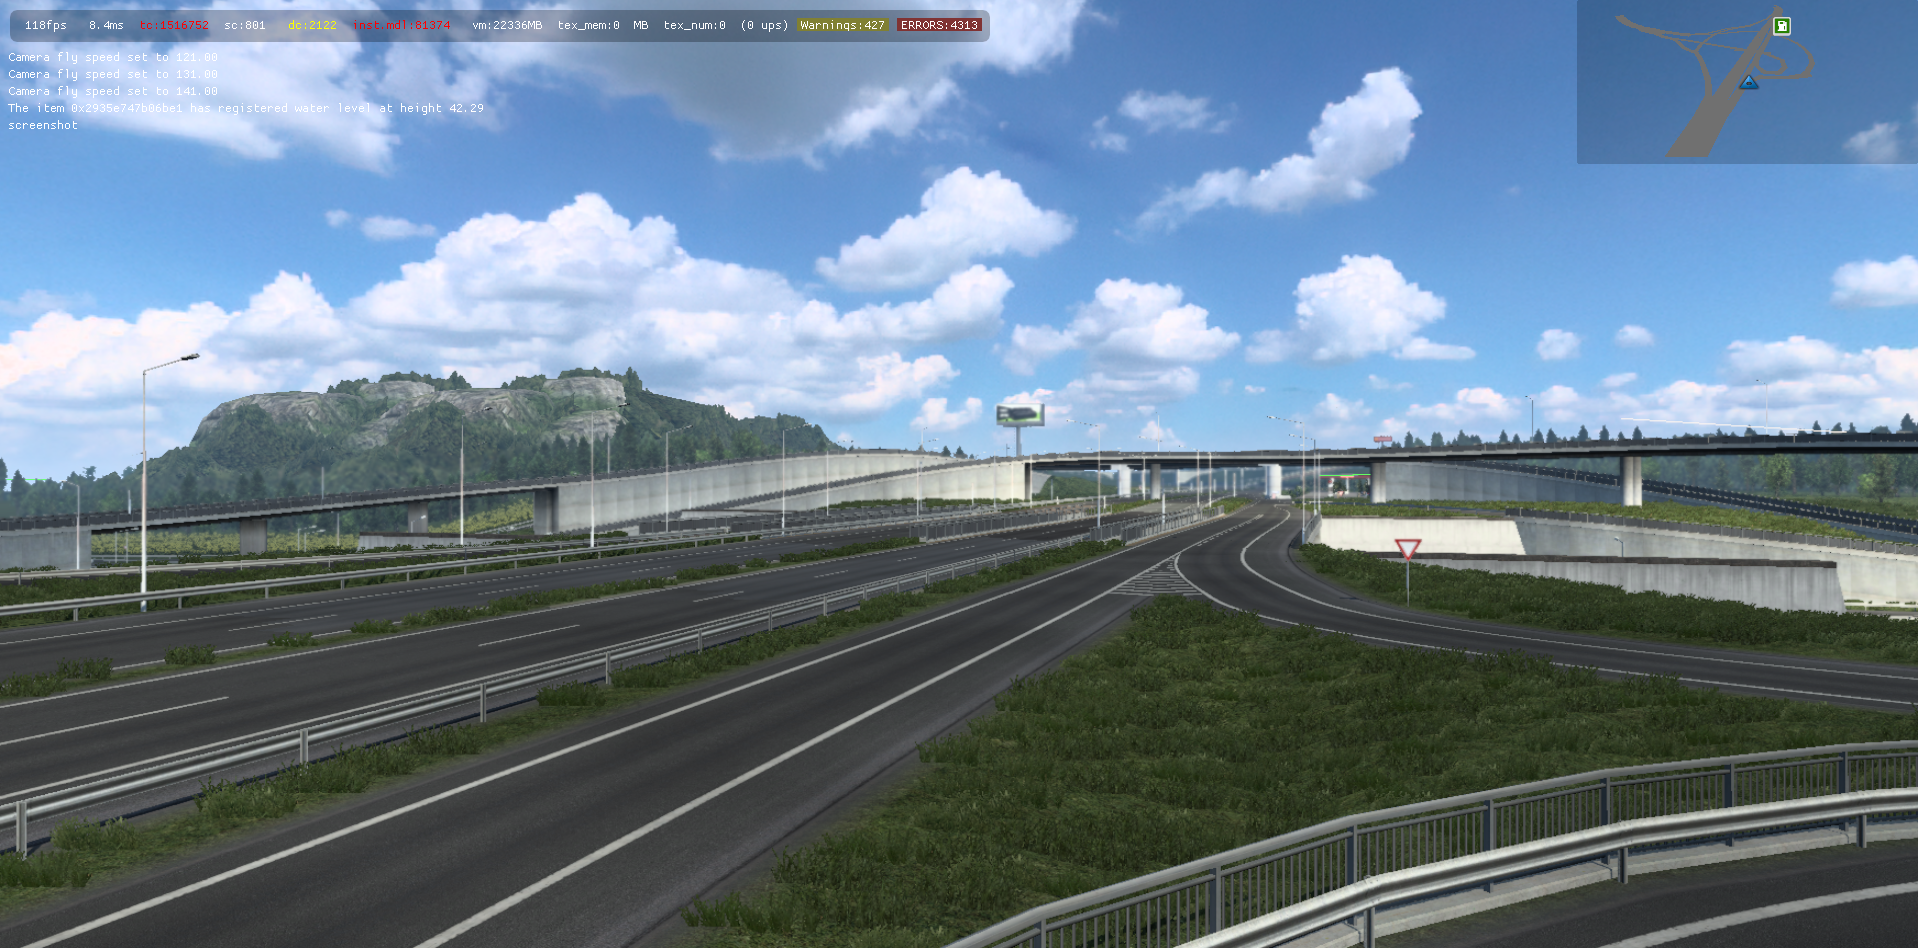 ets2_20210622_193642_00.png